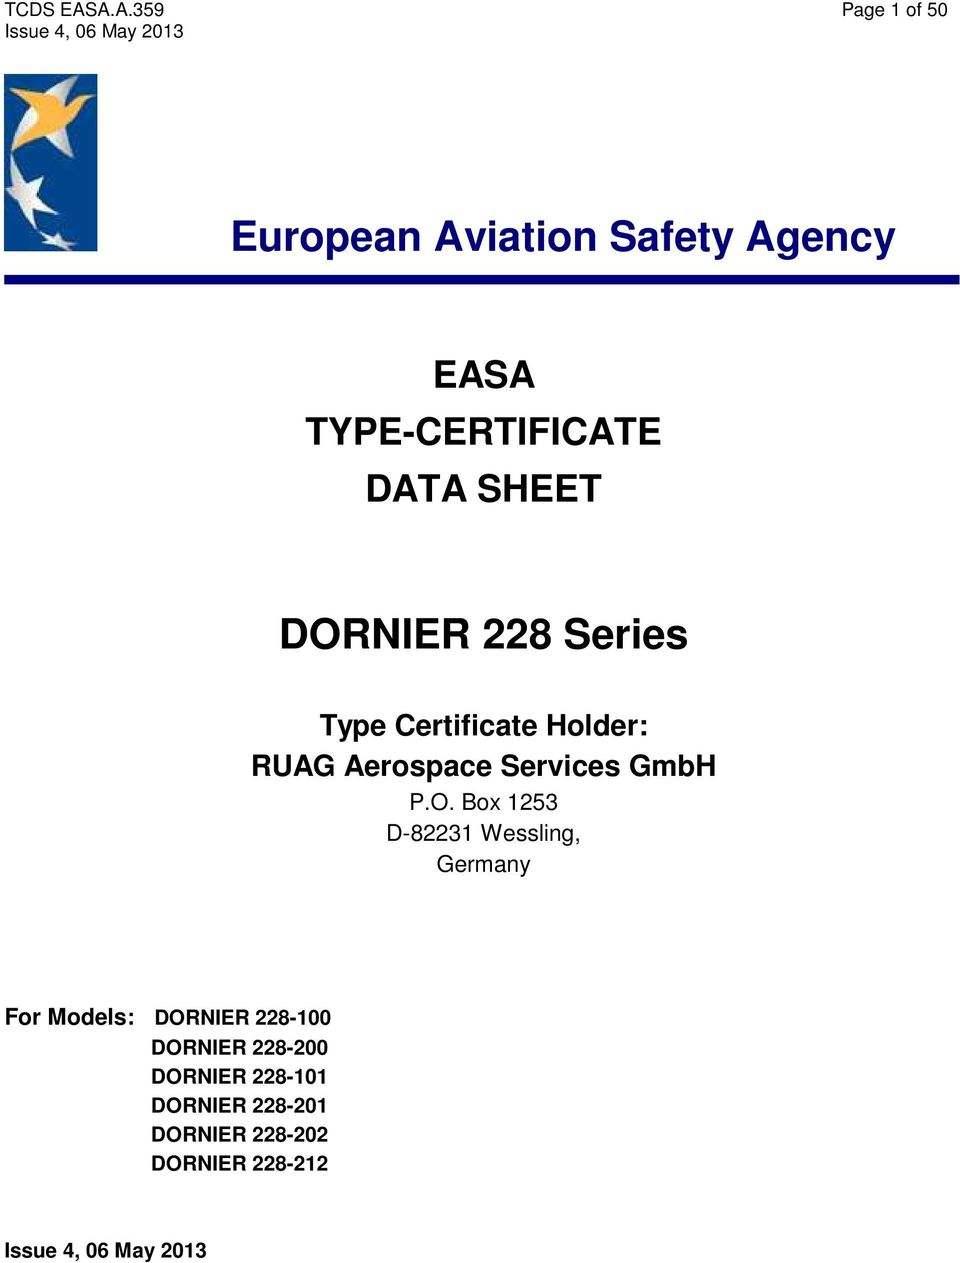 Tcds Easaa359 Page 1 Of 50 Issue 4 06 May 2013 Easa Type